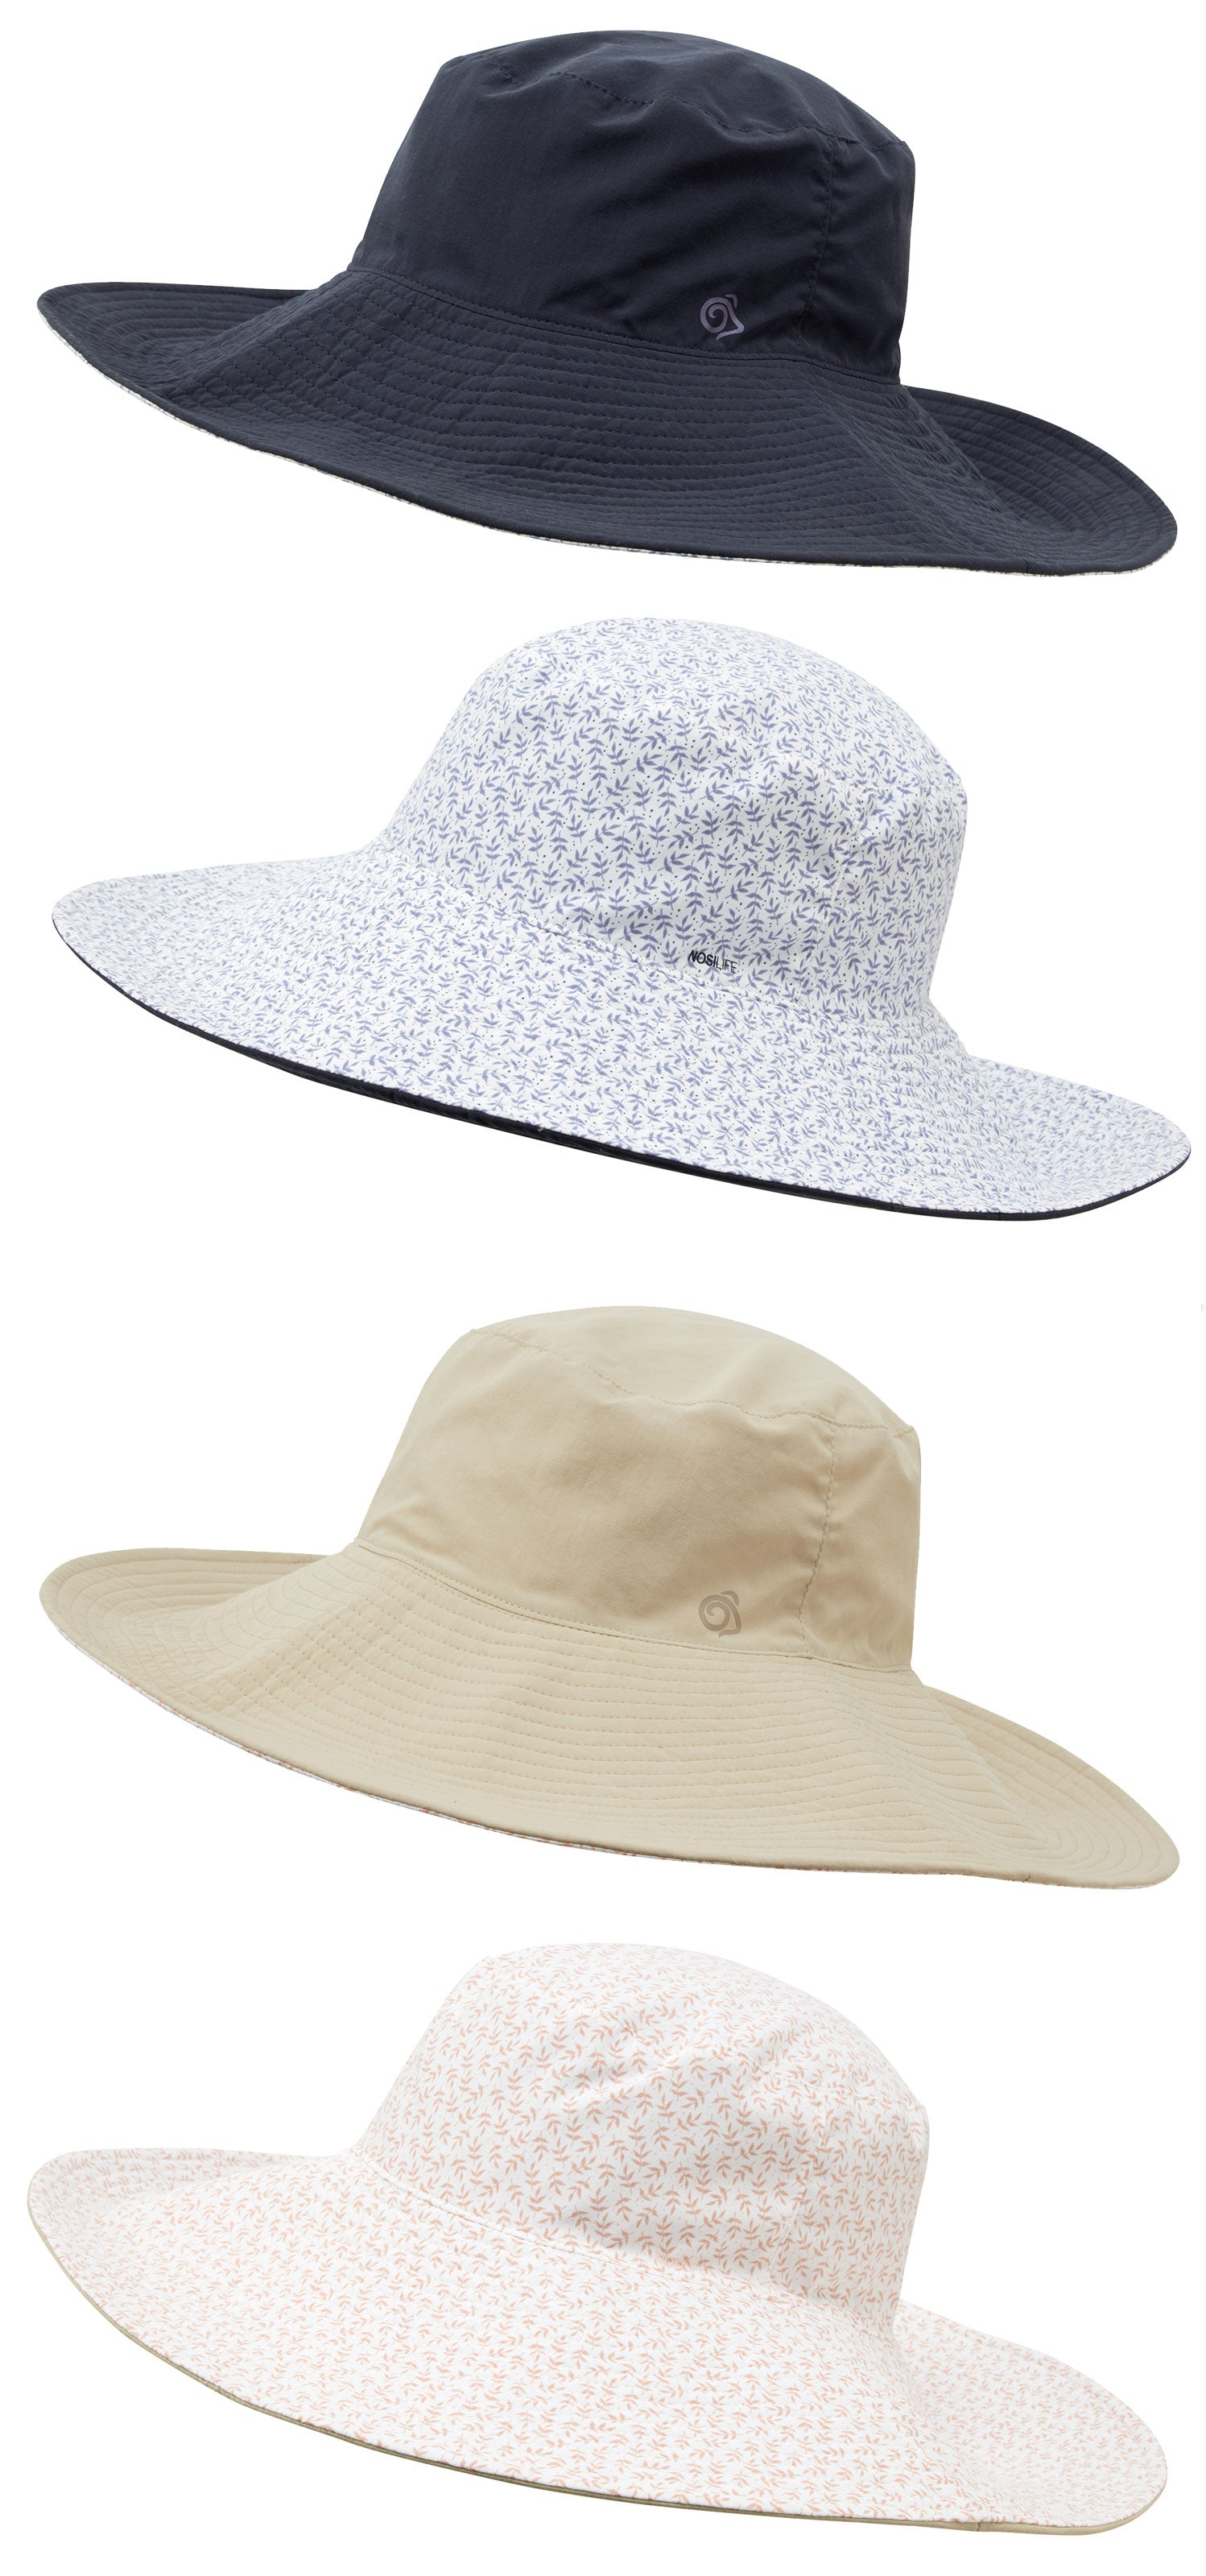 CRAGHOPPERS WOMENS NOSILIFE SUN HAT